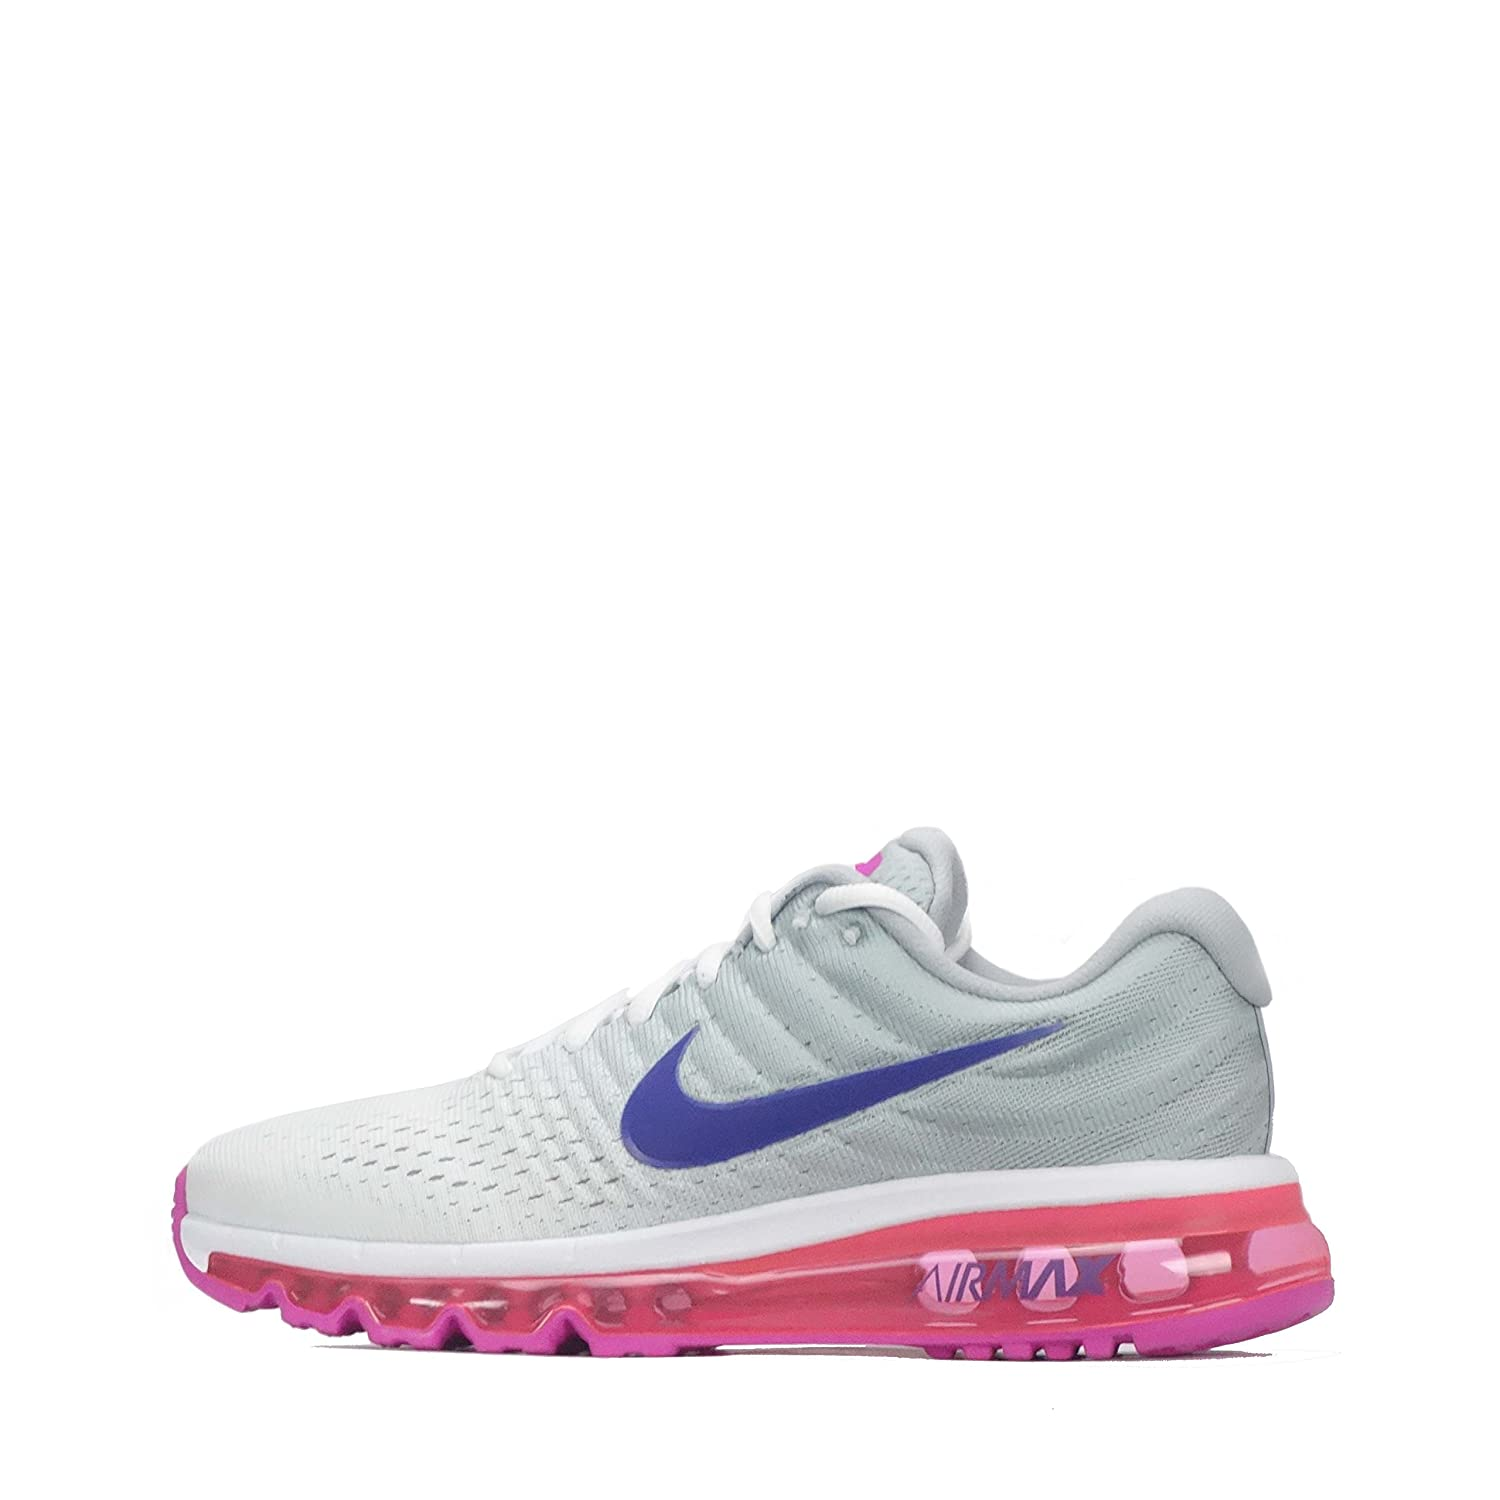 hot sale online ba15b d38f1 Amazon.com   Nike Air Max 2017 Women s Running Sneaker (5.5 B(M) US)   Road  Running